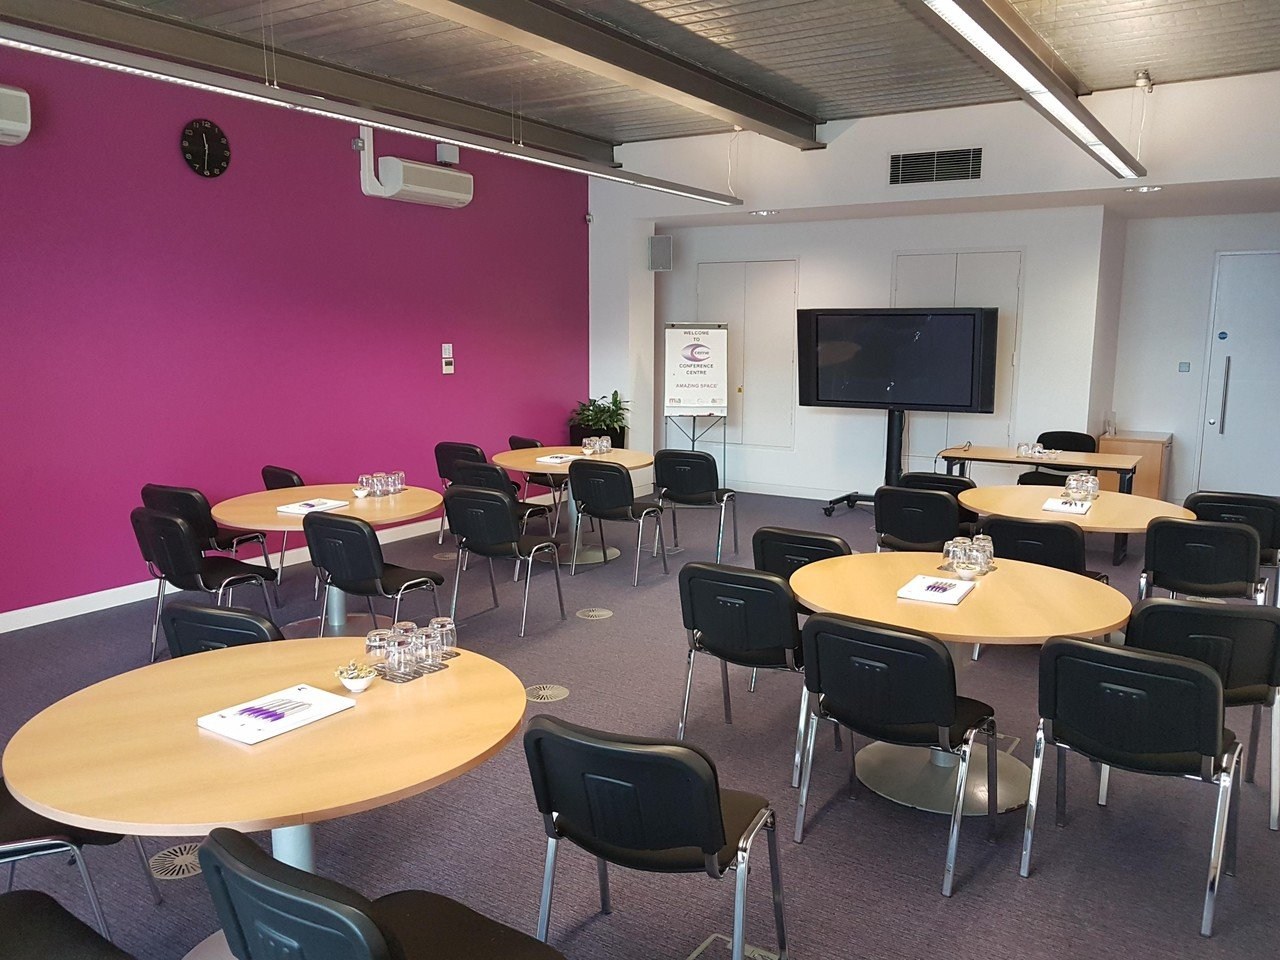 Greenhithe training rooms Meetingraum Ceme conference - Large rooms image 1